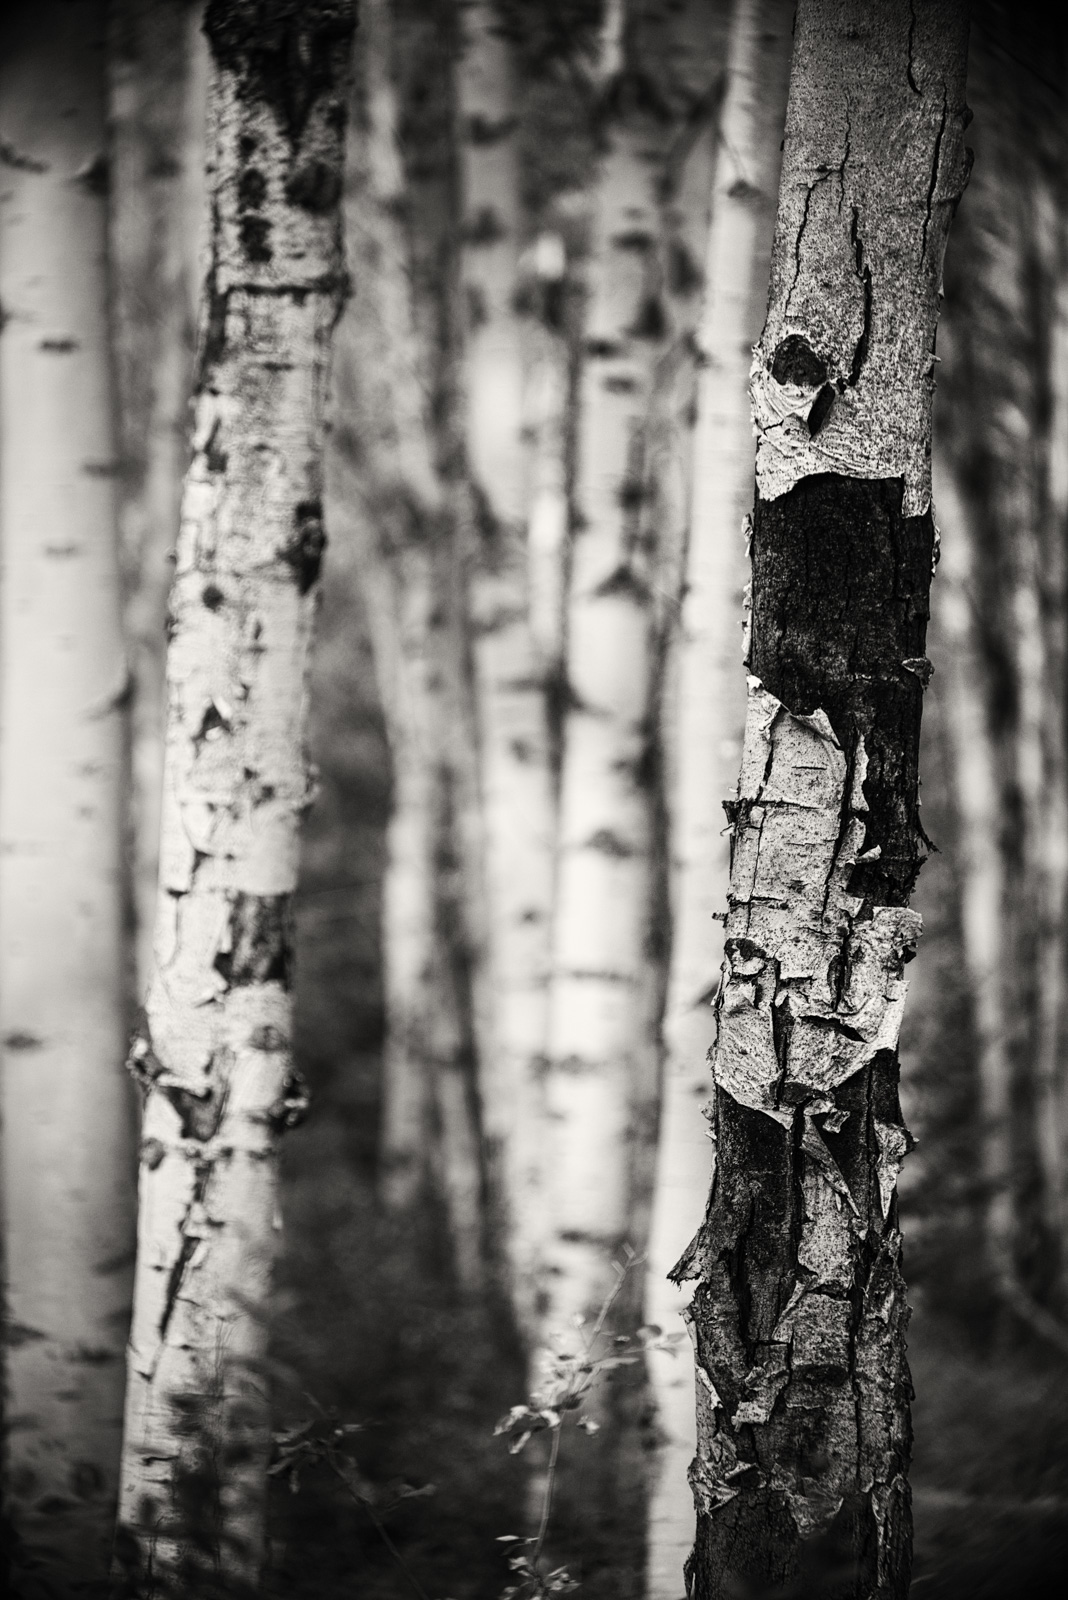 You can make interesting compositions using Aspen trees - one of our photo stops. © Allie Richards